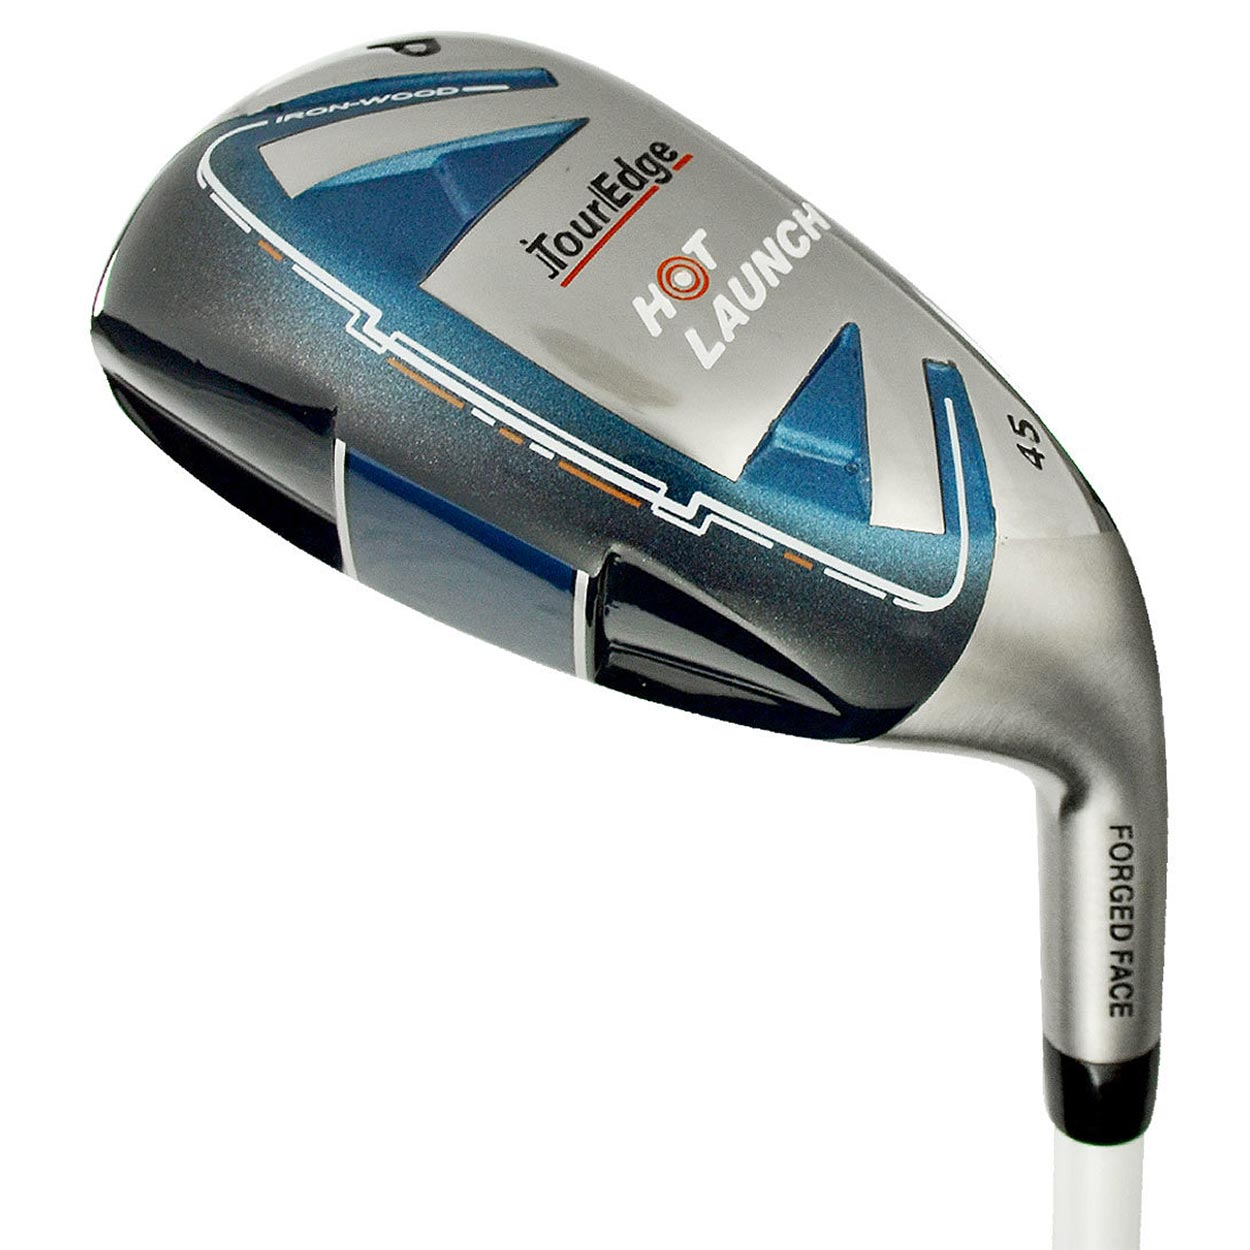 Tour Edge Golf Clubs Hot Launch Iron-Wood Hybrid,  Brand NEW -